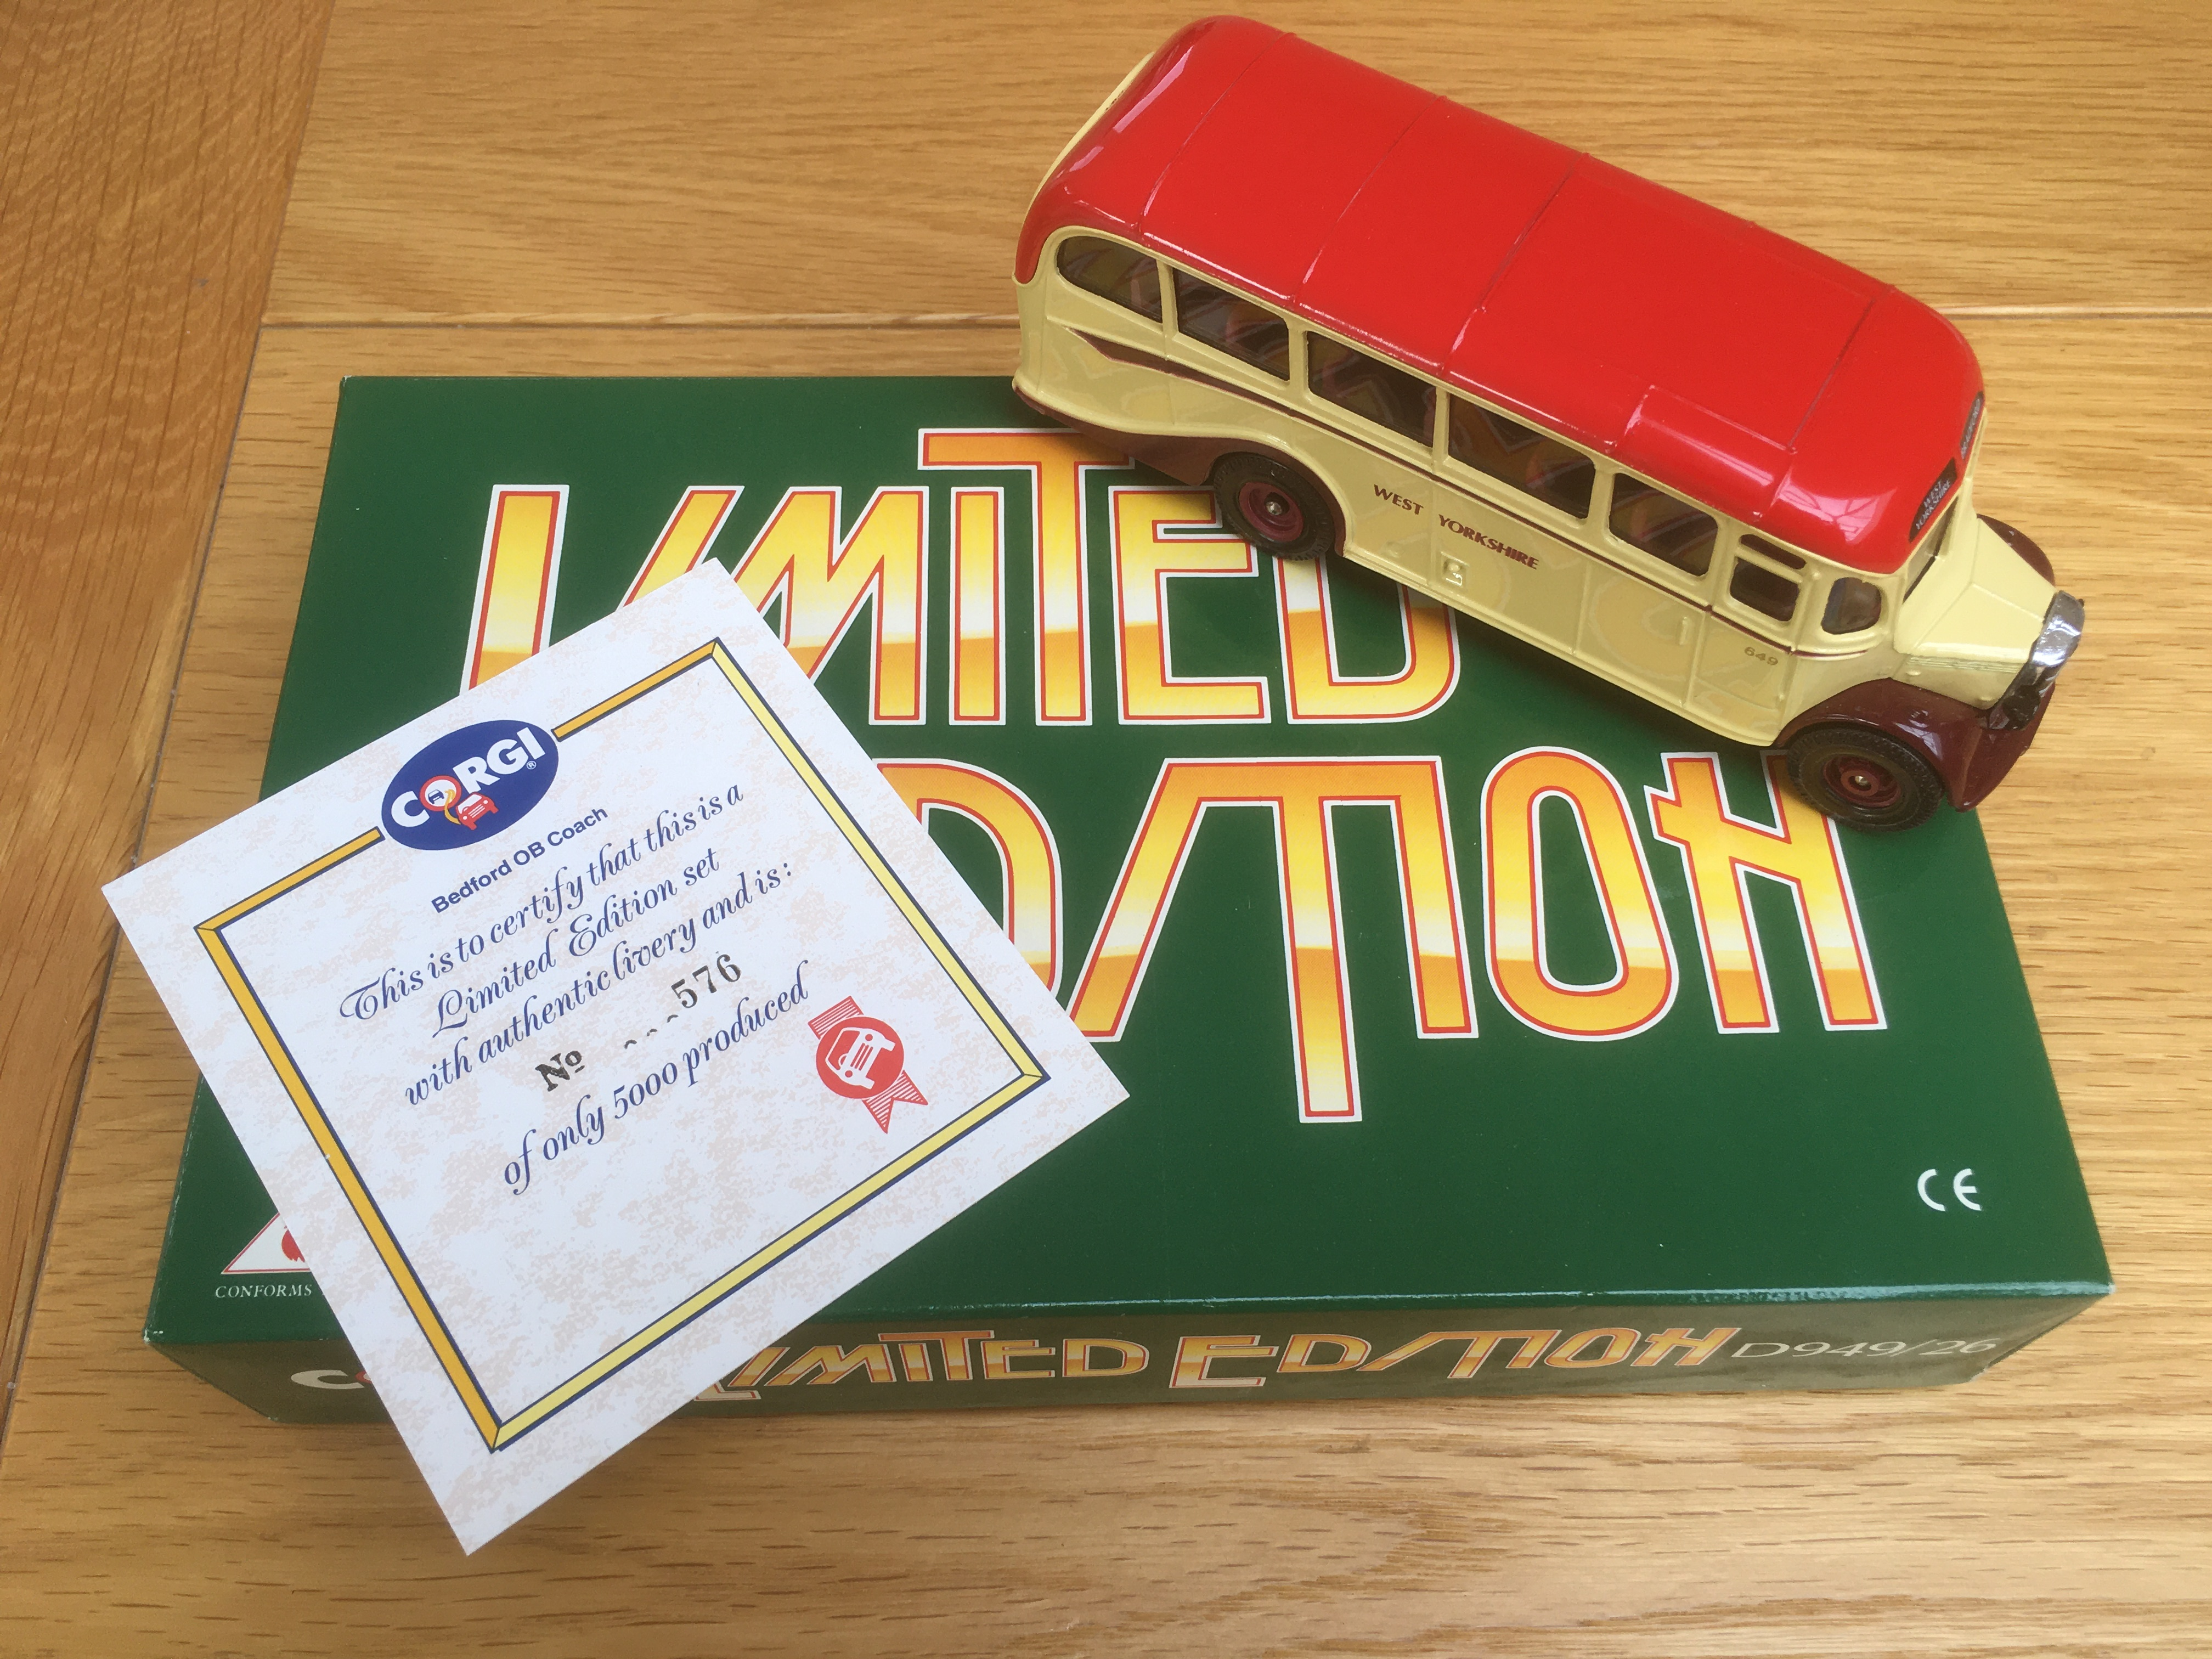 Limited Edition Corgi Bedford OB Coach West Yorkshire - D949/26 - Image 6 of 8